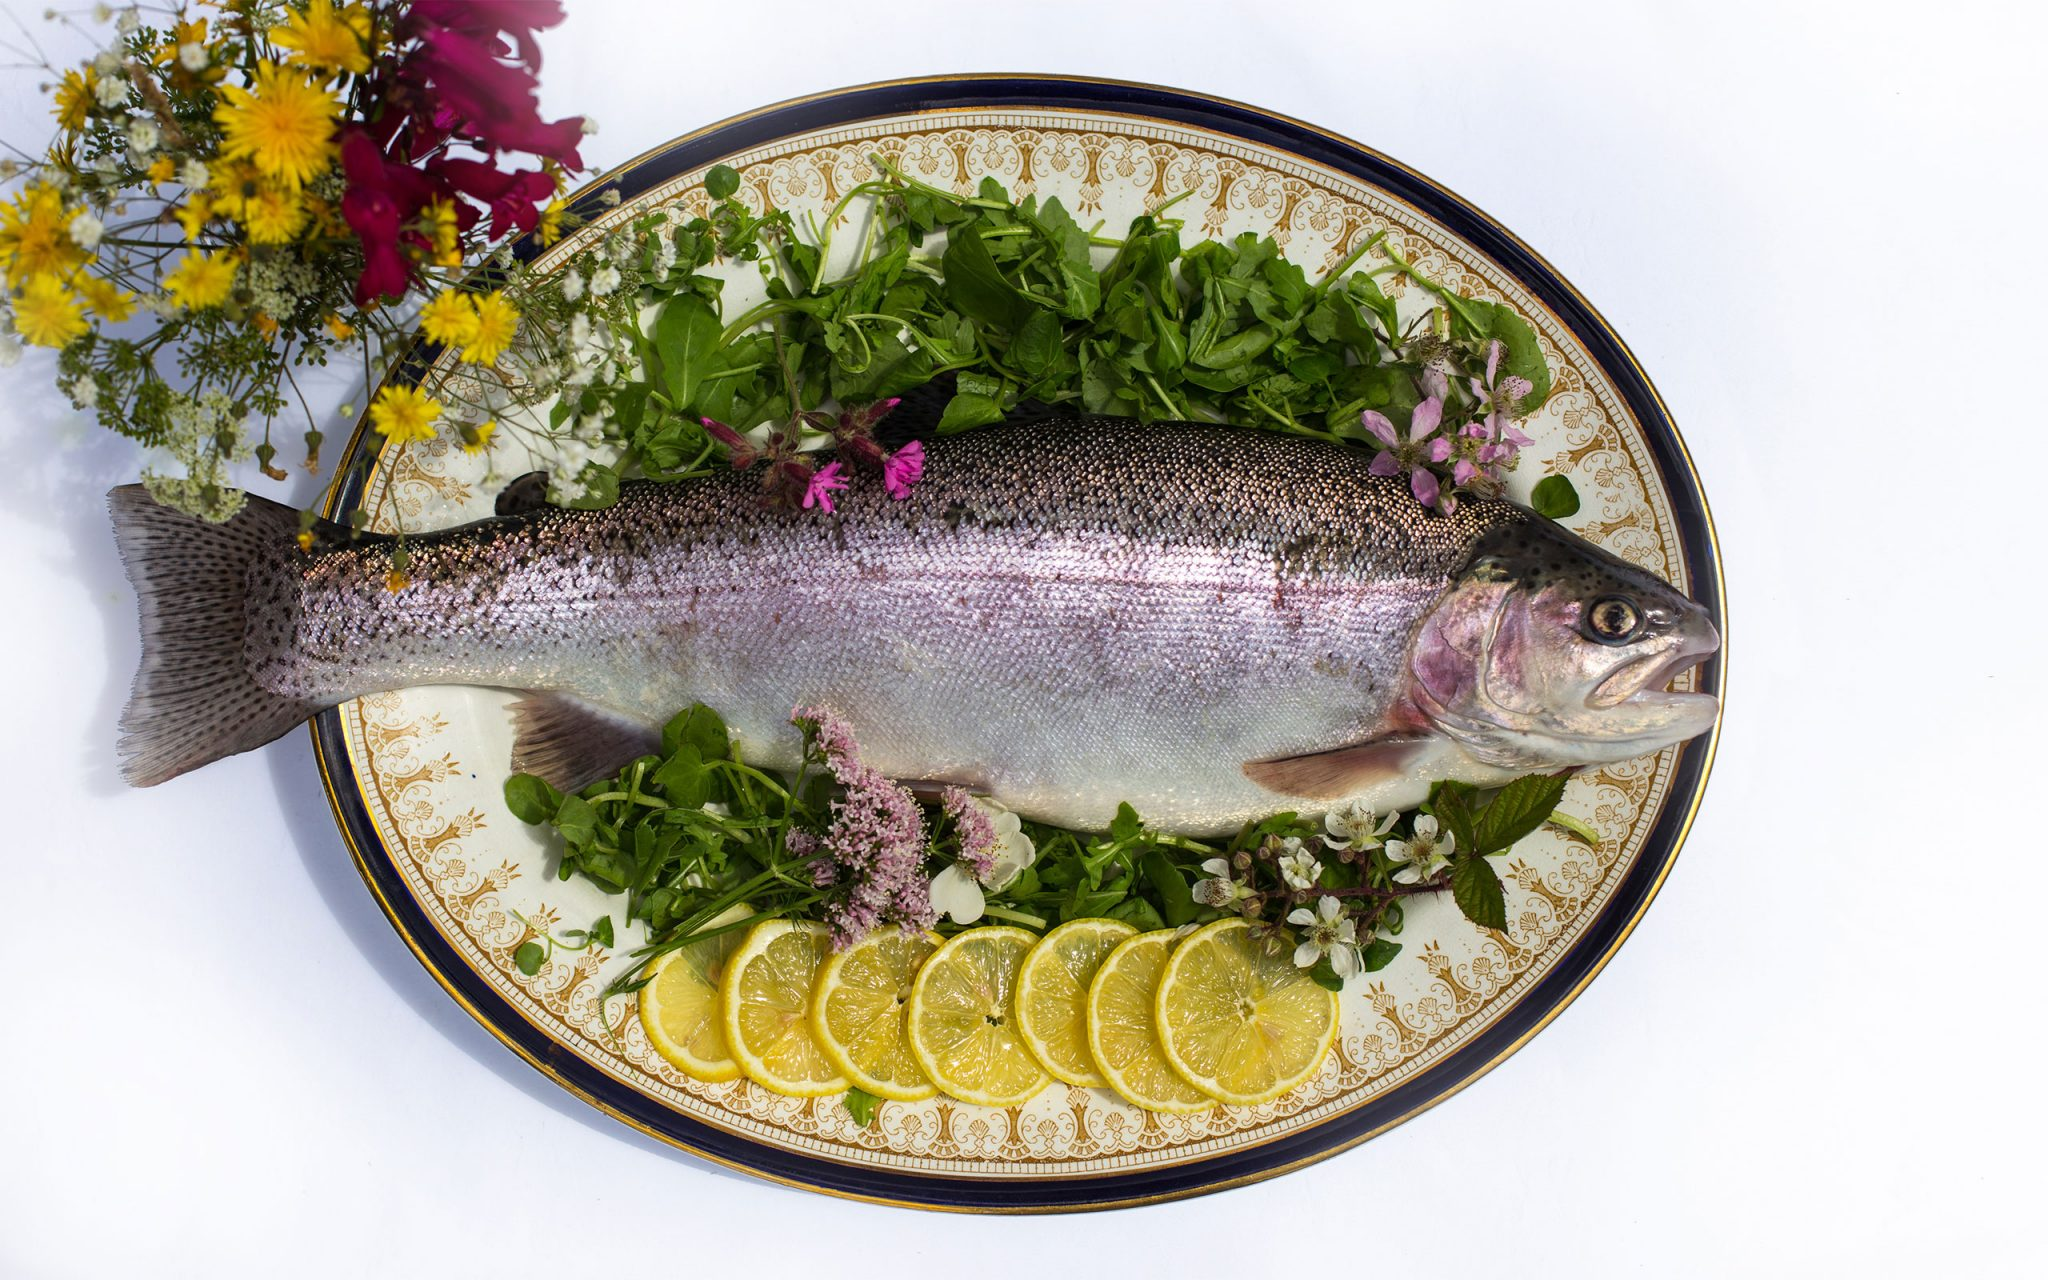 Portraits, food photography, Rainbow Valley Trout Farm, hatchery, smoke-house, fish, foodies, Exmoor, Food Producers, Rainbow trout, Carey Marks Photography